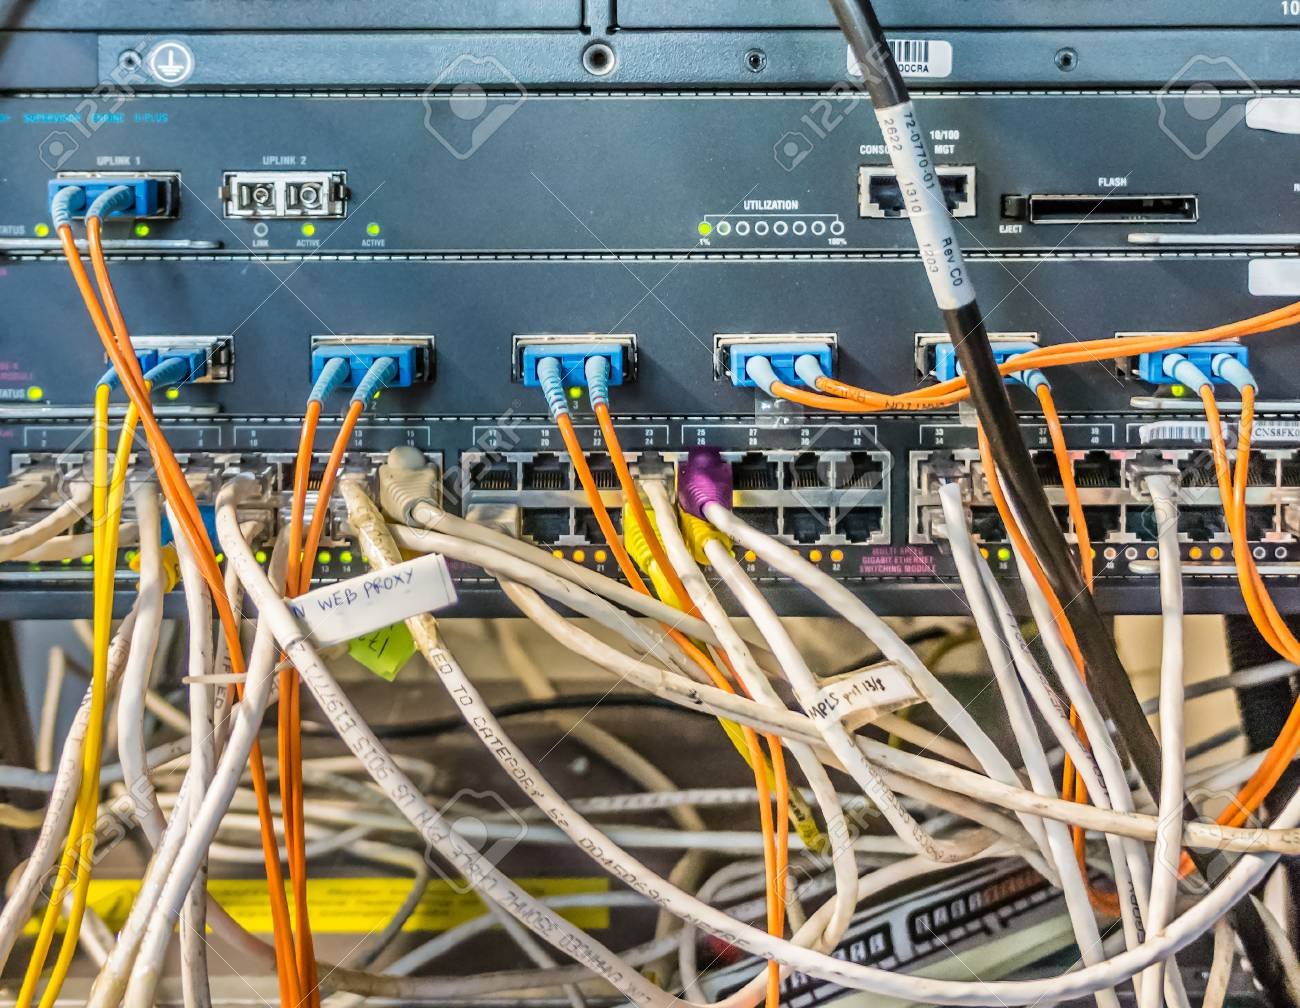 messy cables and wires unorganized cabling in server room stock rh 123rf com service wiring server wiring diagram